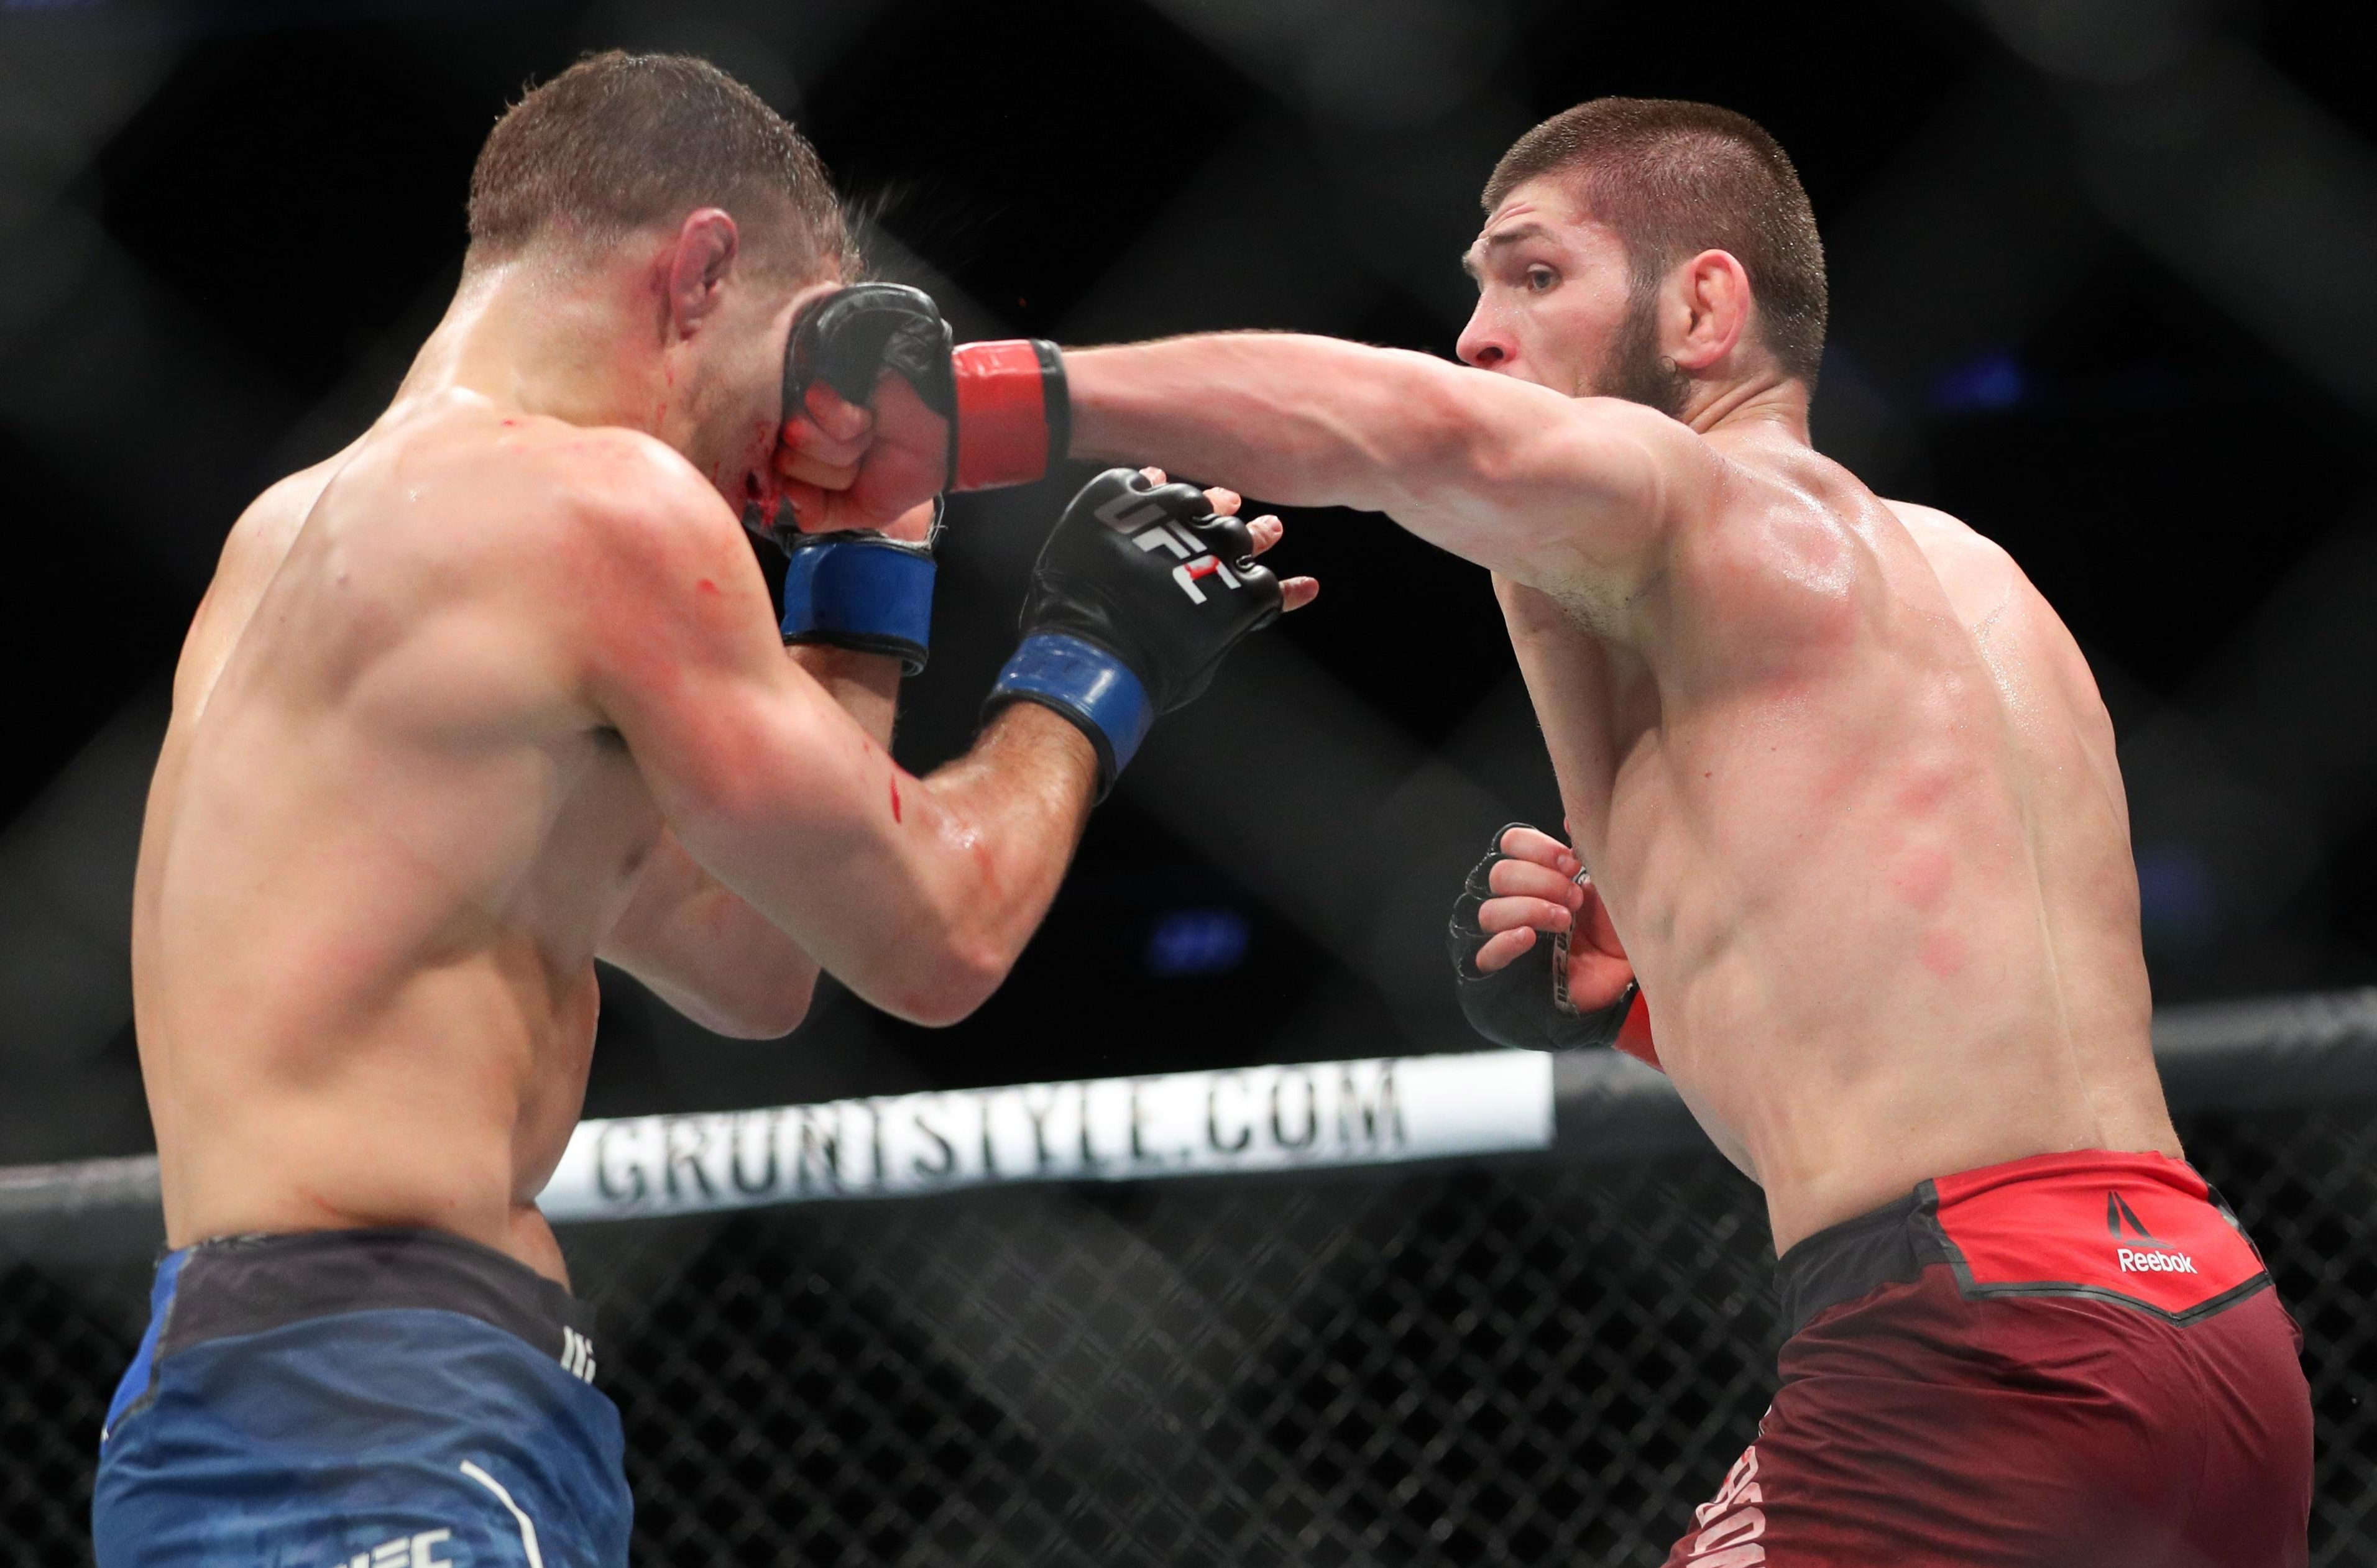 The Russian captured the UFC lightweight title after beating Iaquinta